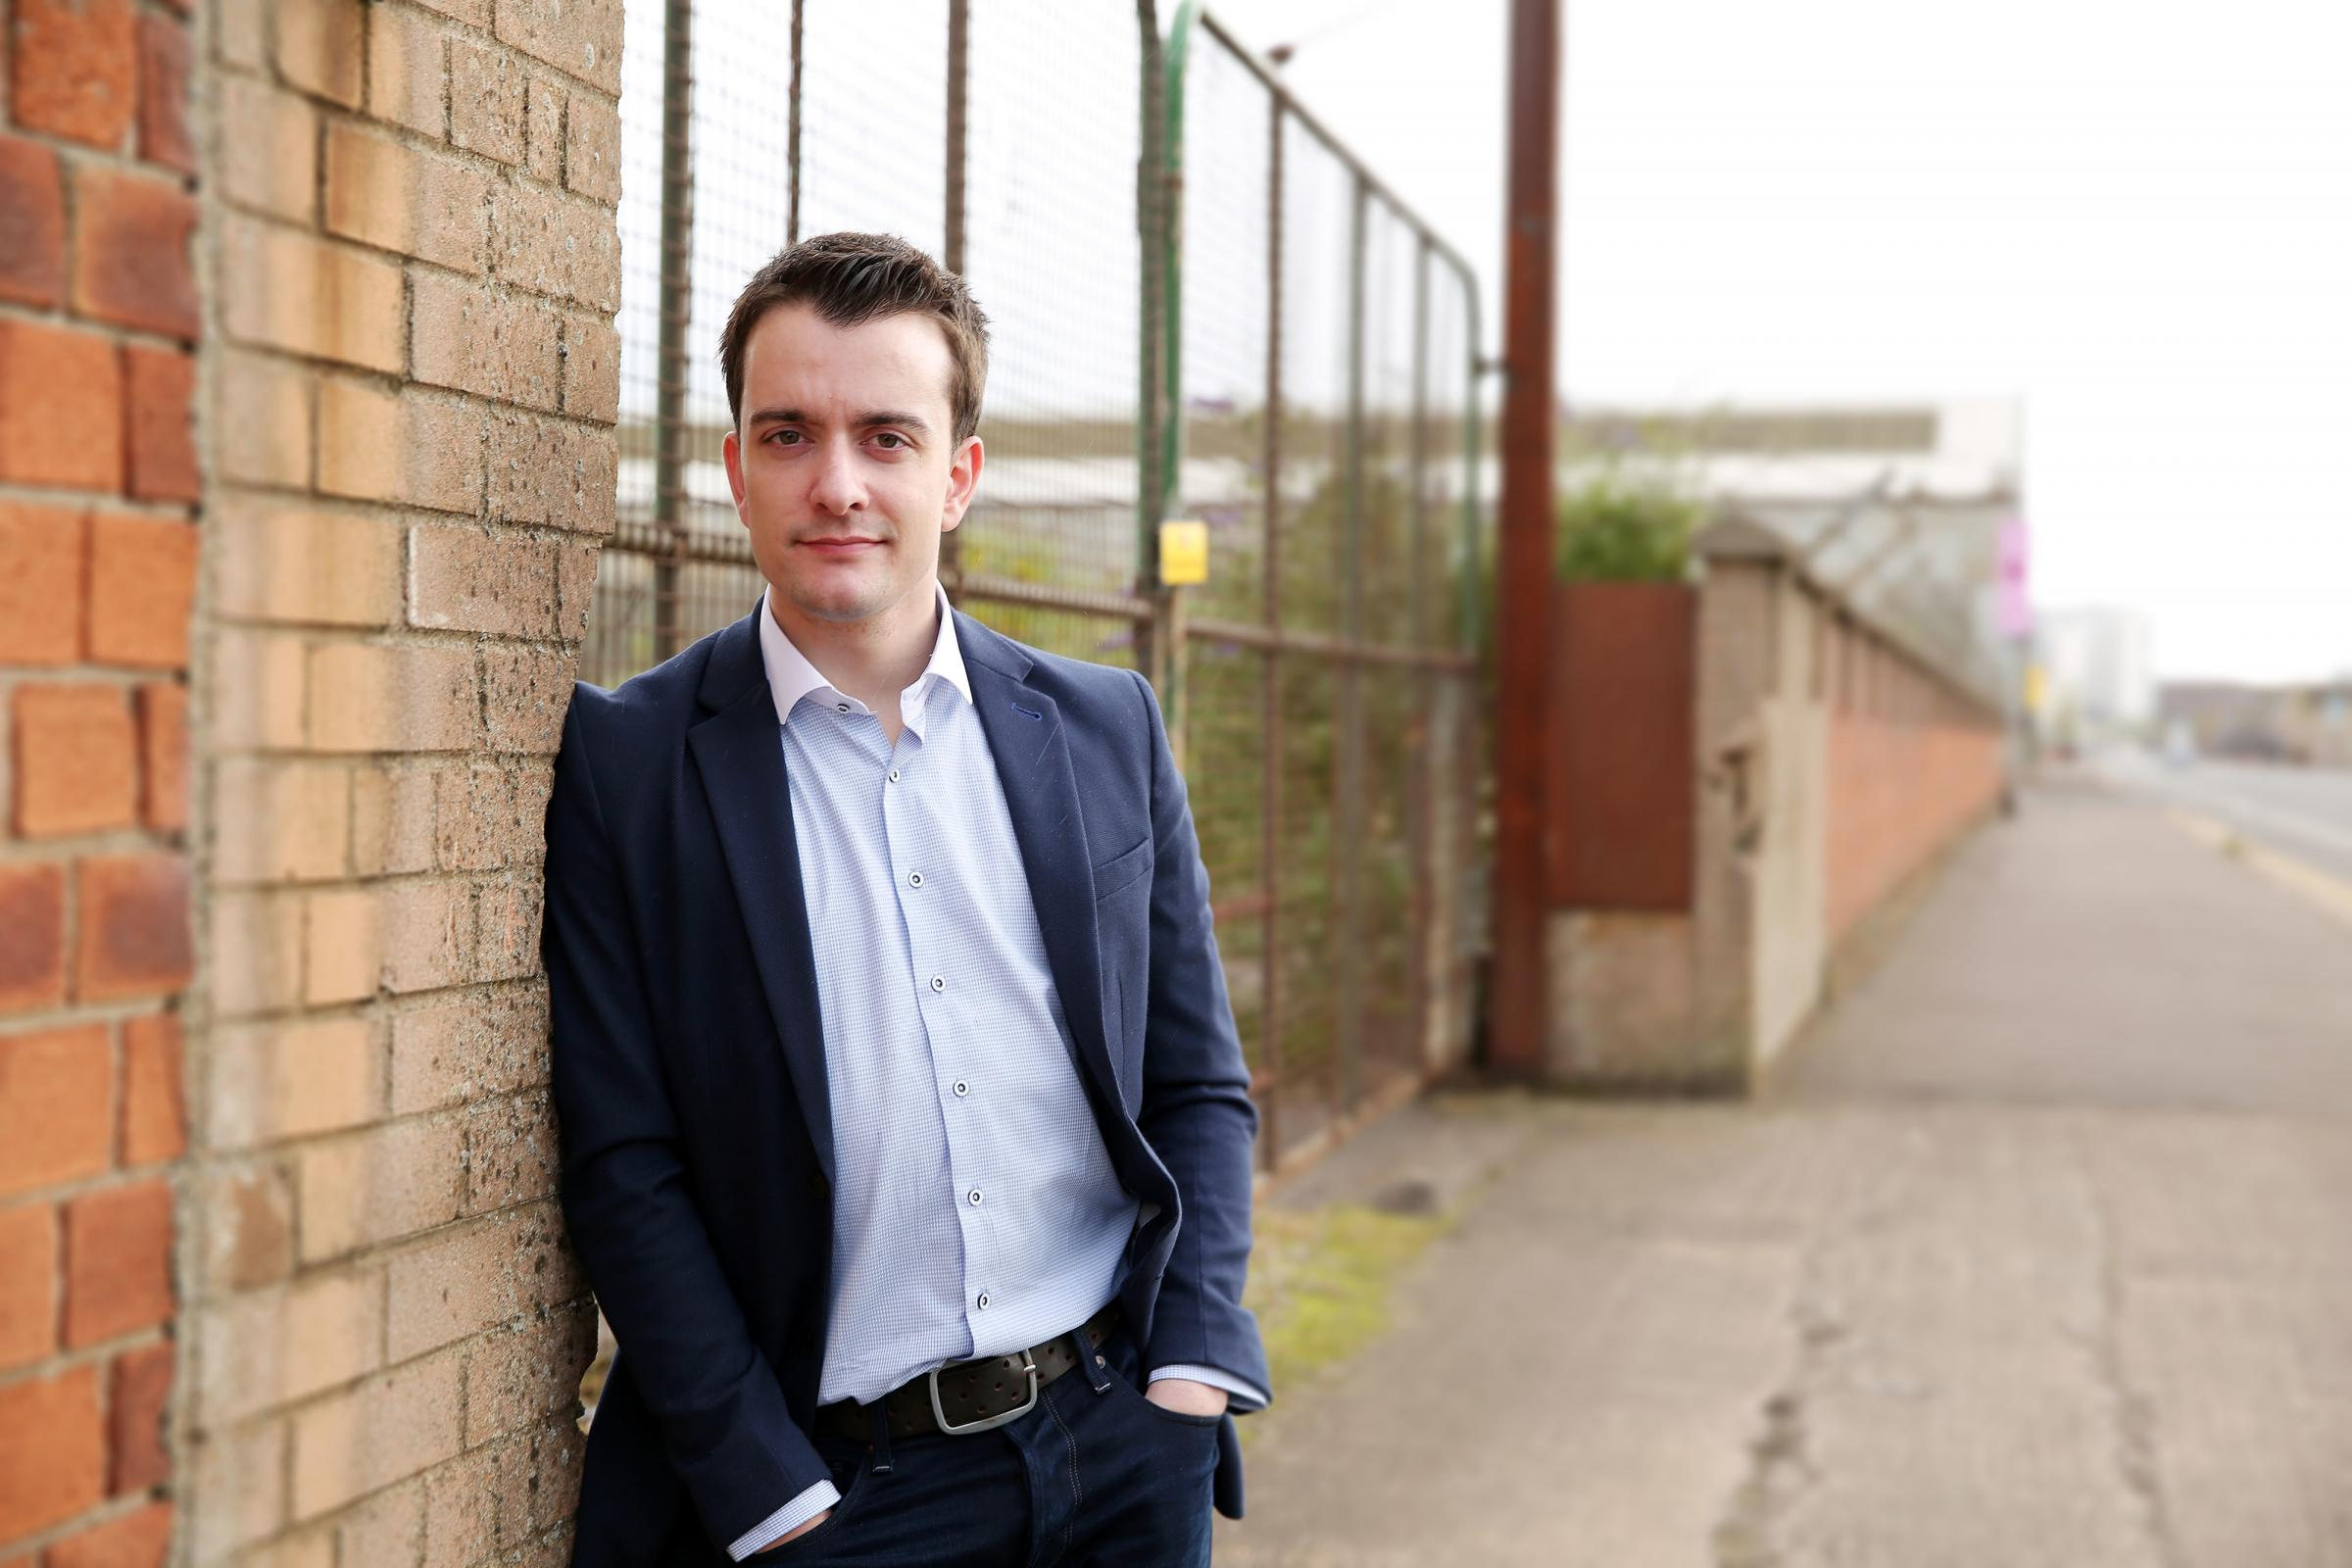 The Impartial Reporter looks into child abuse cases in Northern Ireland